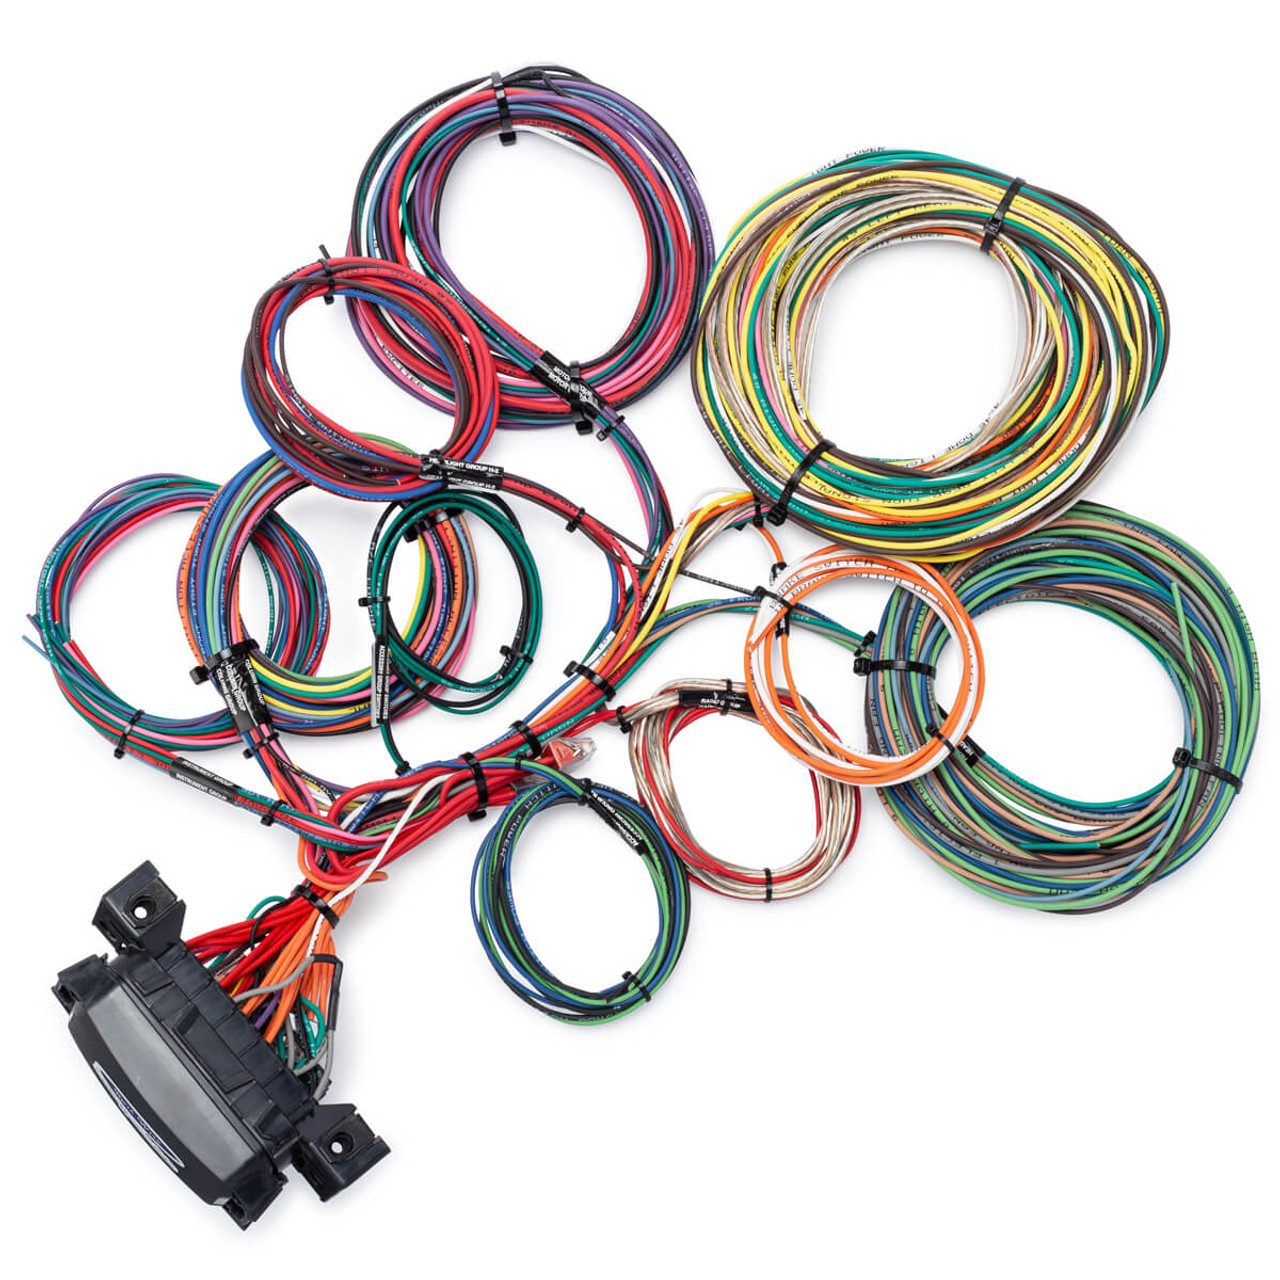 hight resolution of 14 circuit waterproof wire harness kwikwire com electrify your ride